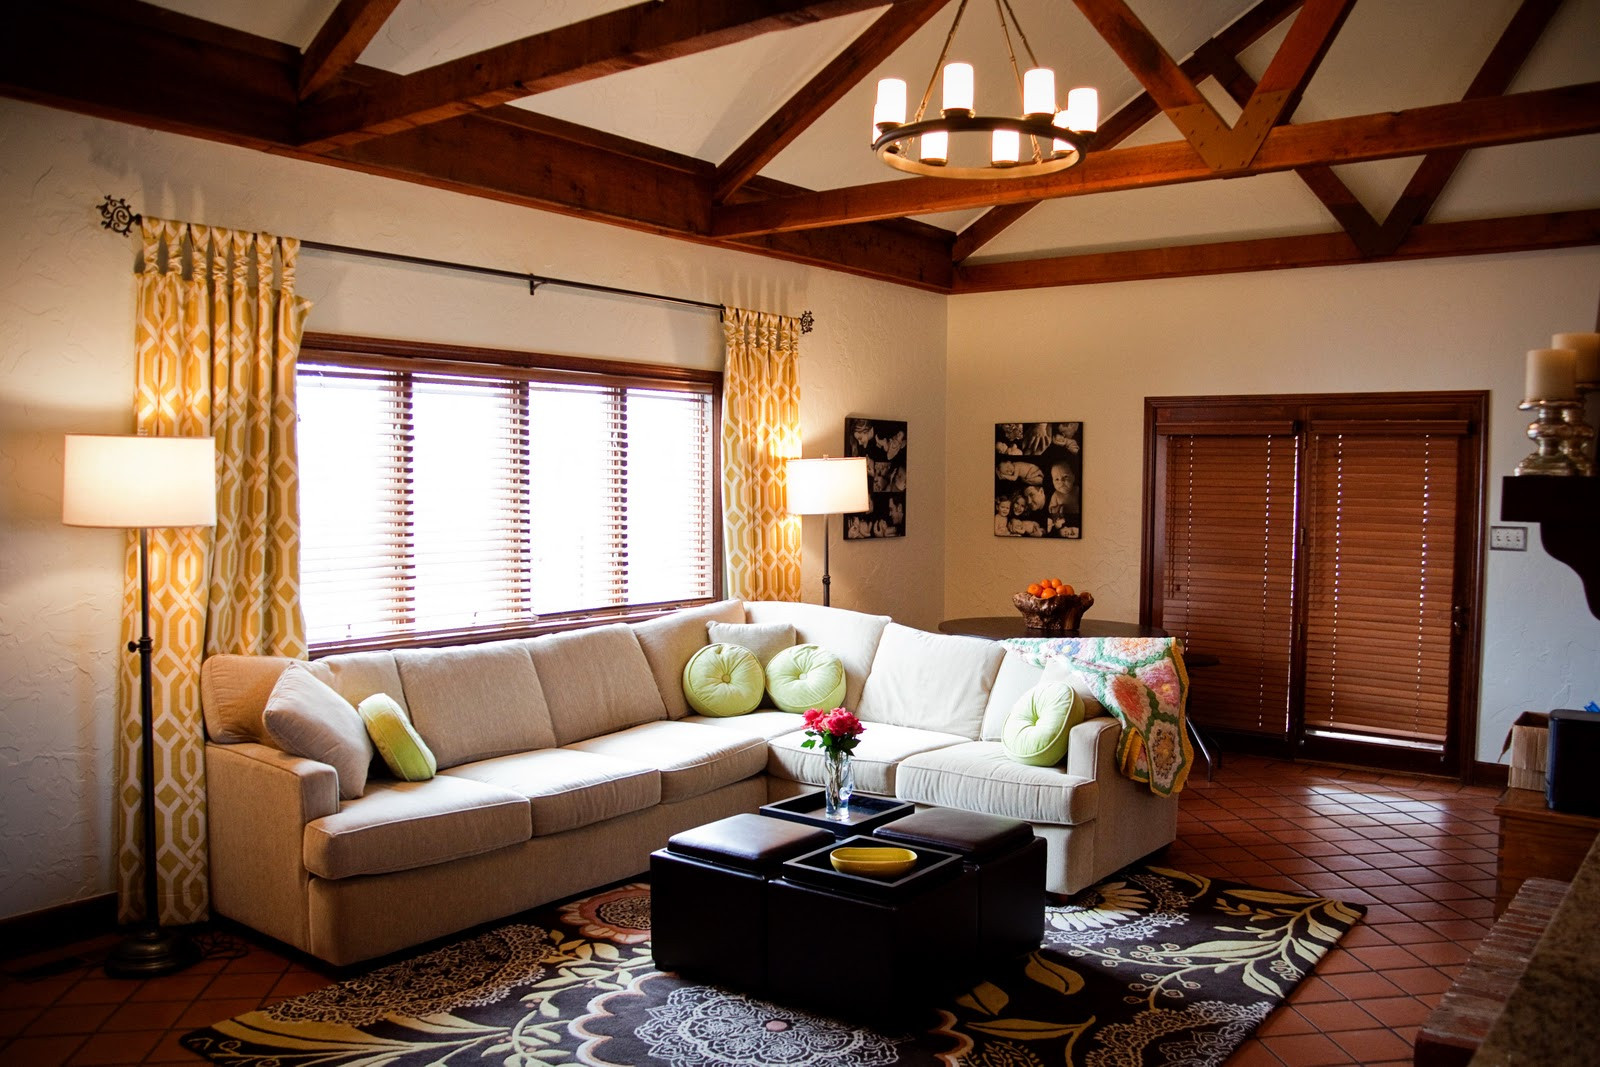 Best ideas about Family Room Designs . Save or Pin How To Place Area Rugs In Family Room Ideas & Inspirations Now.